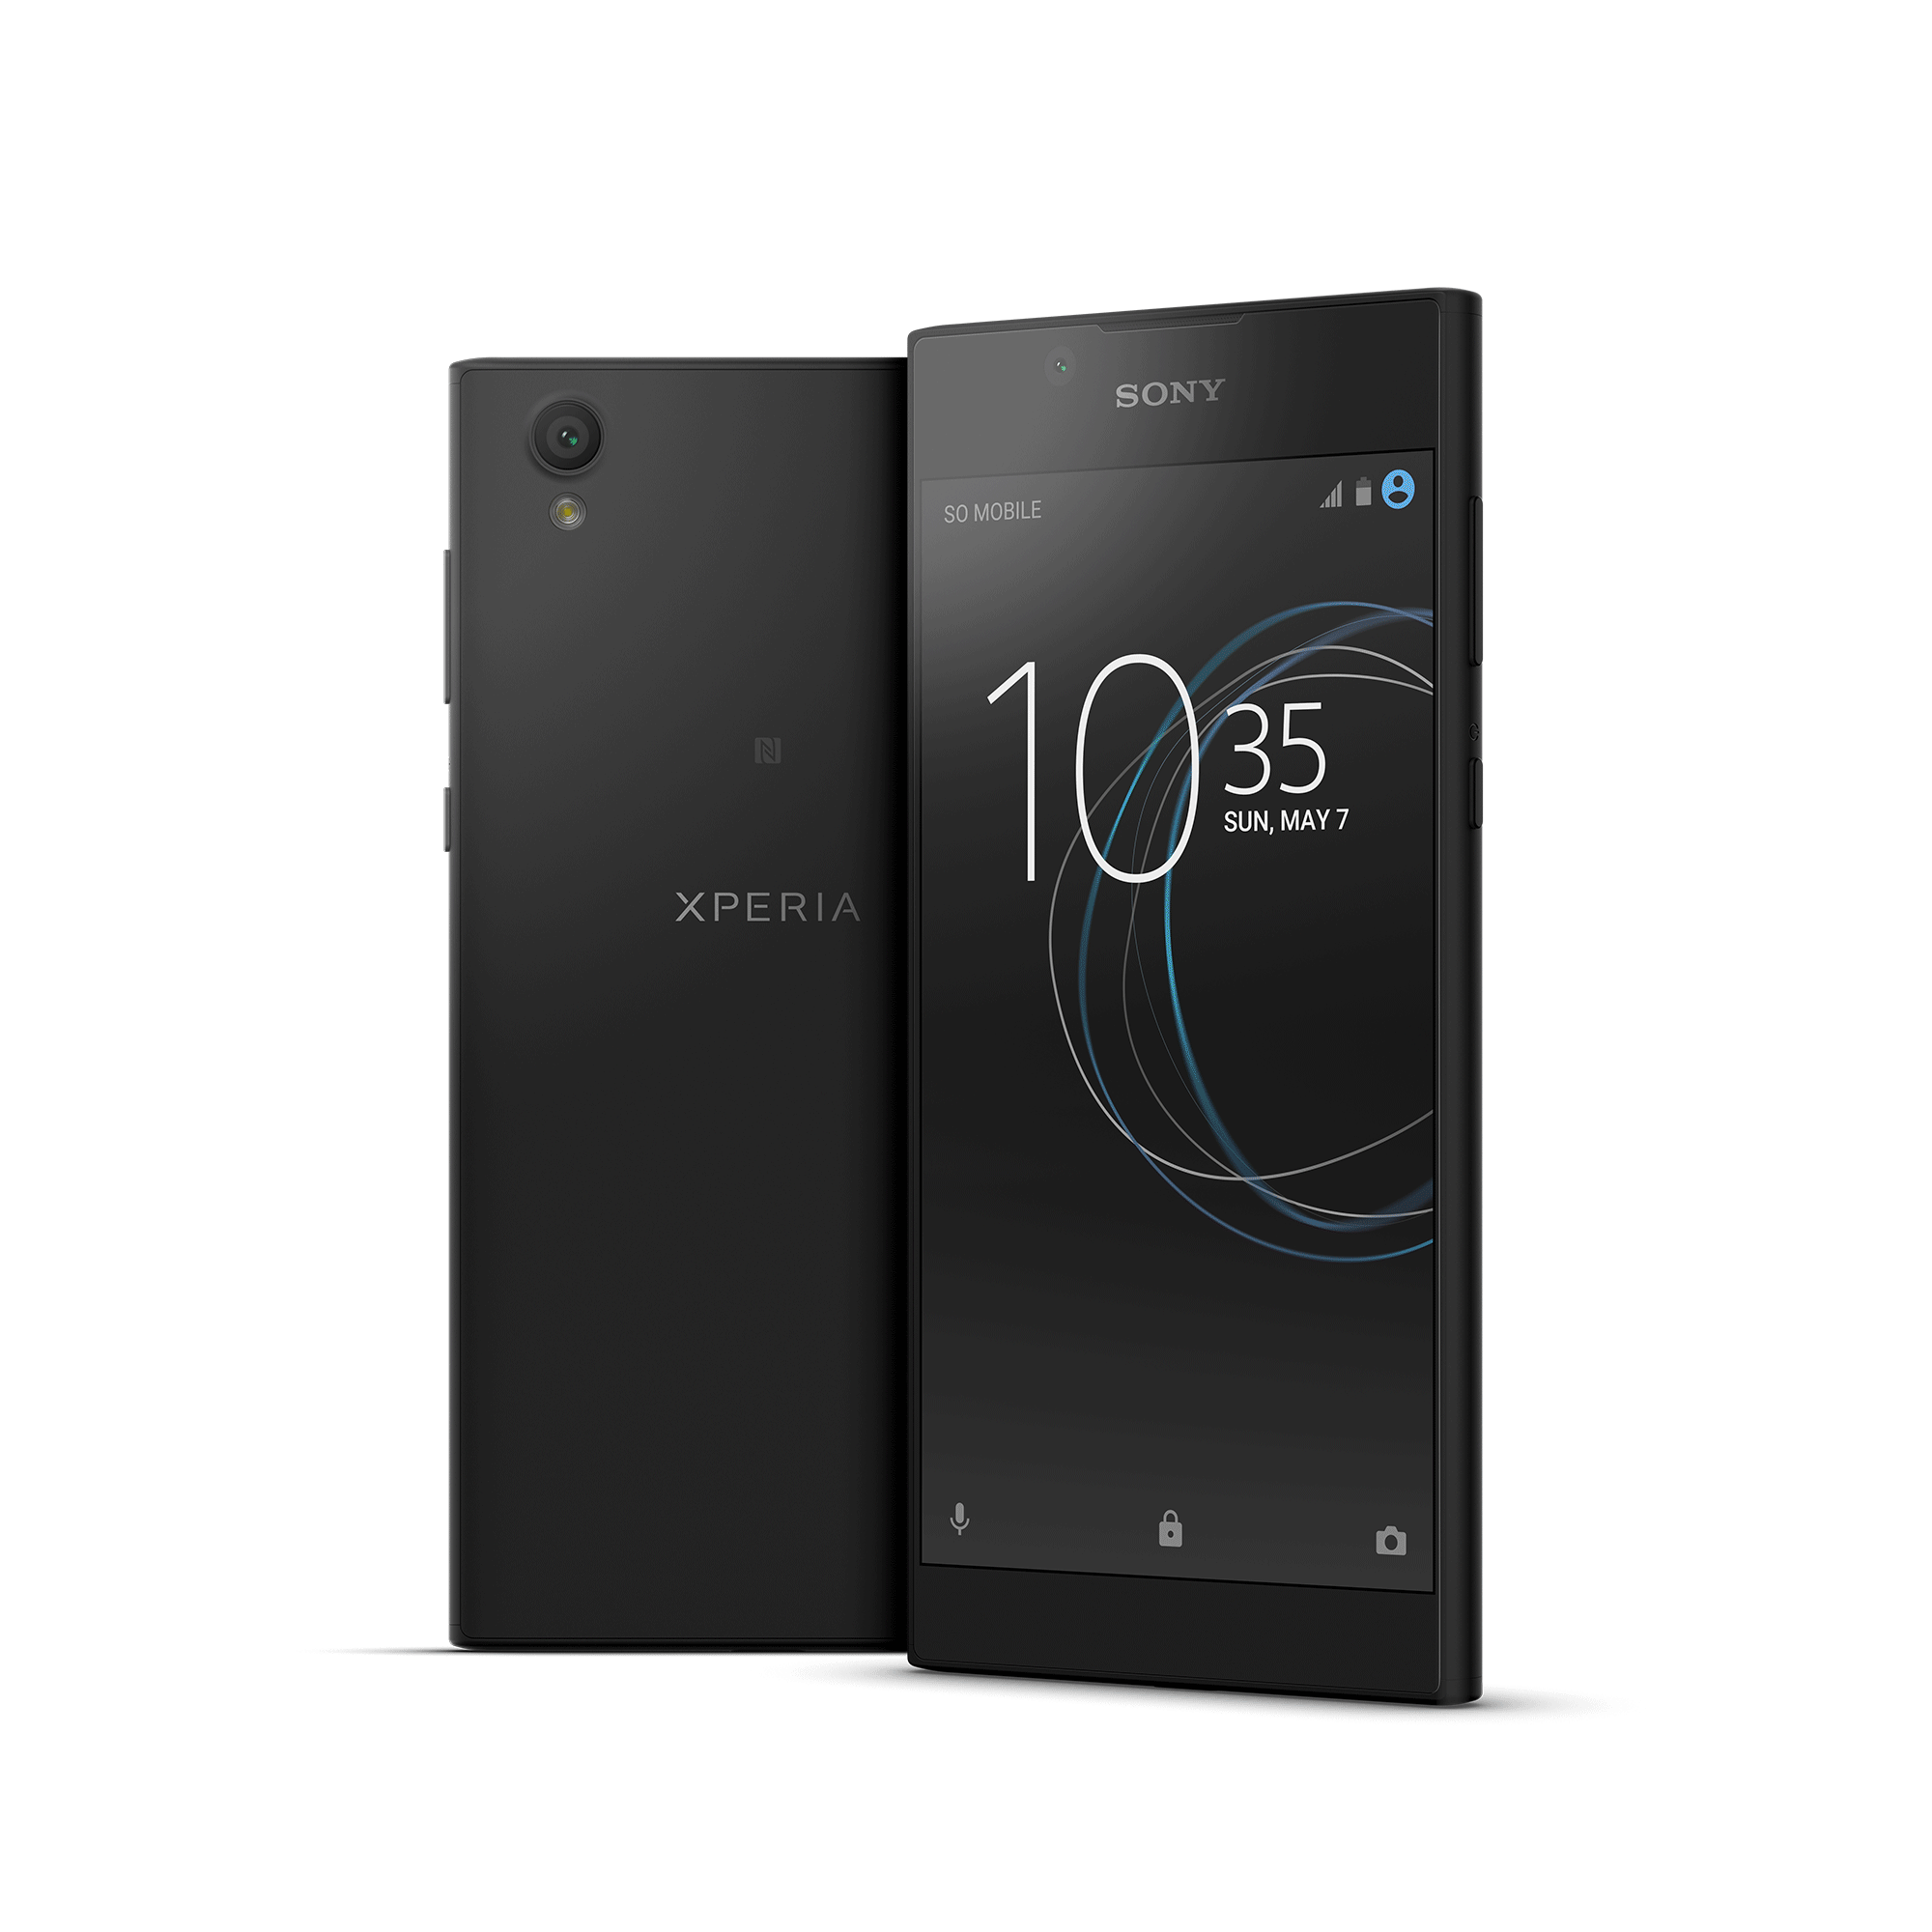 Sony Experia L1 is available for sale - photo 1